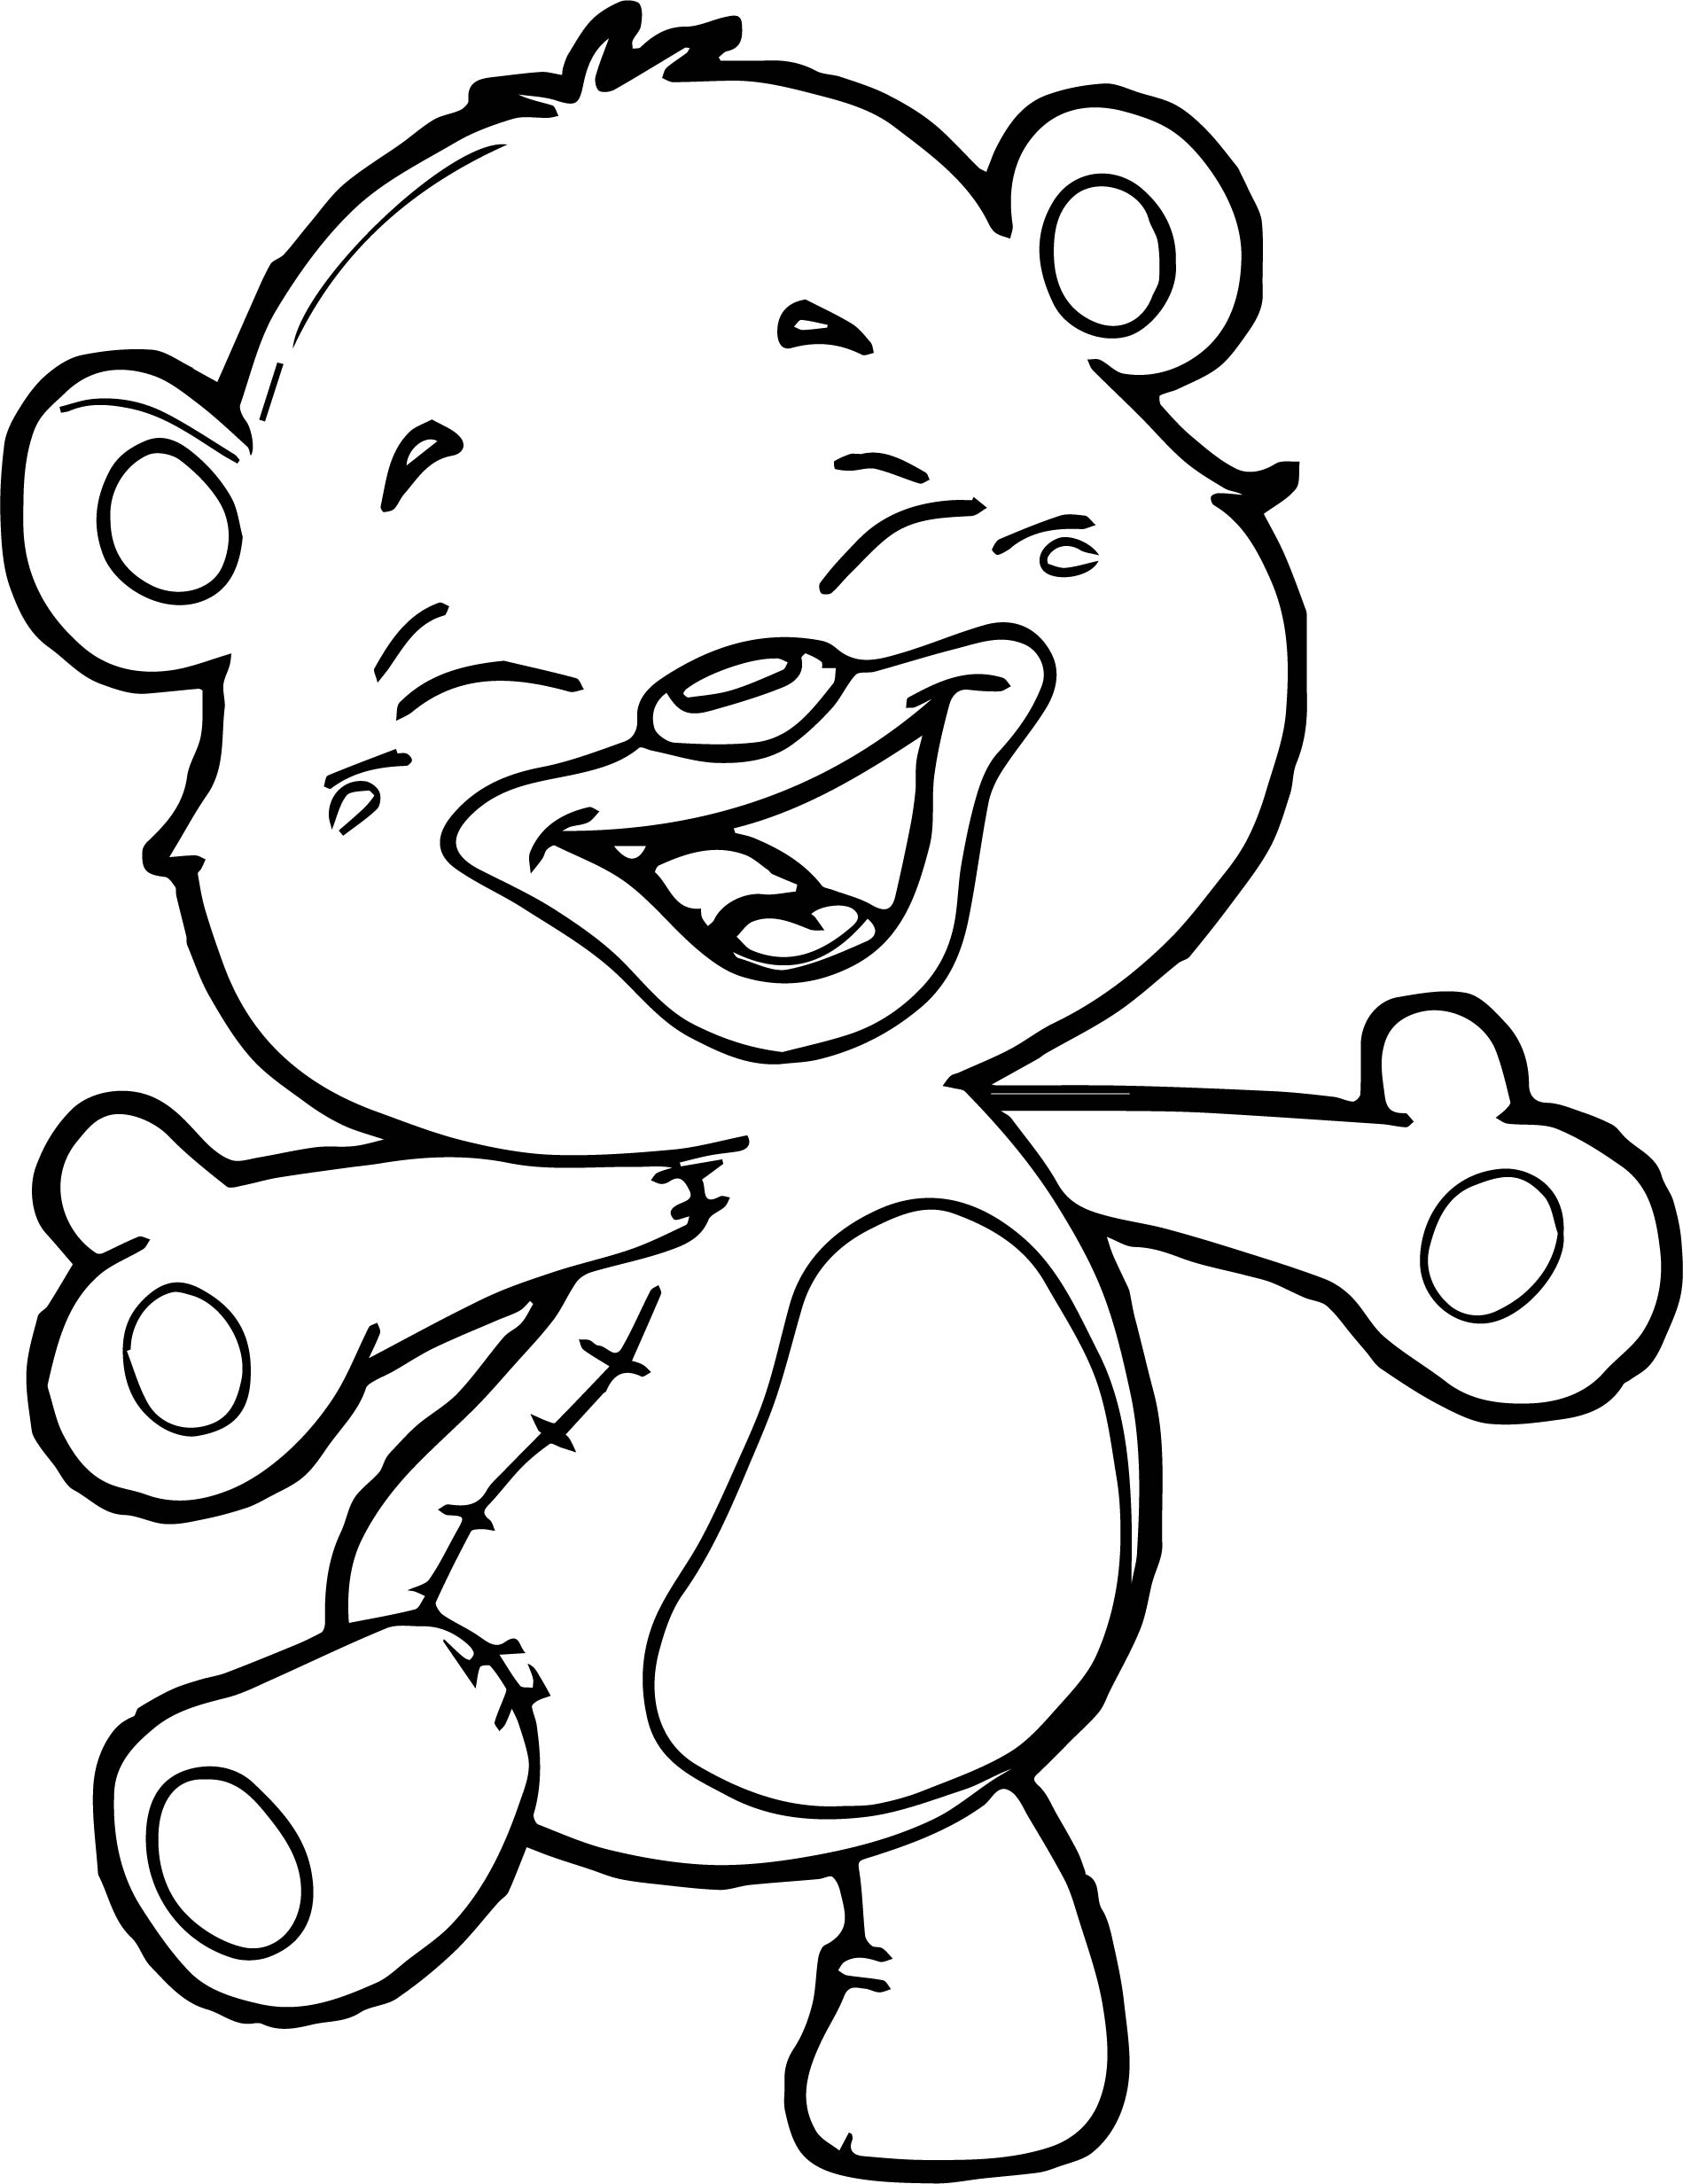 coloring pages small | Happy Small Bear Coloring Page | Wecoloringpage.com